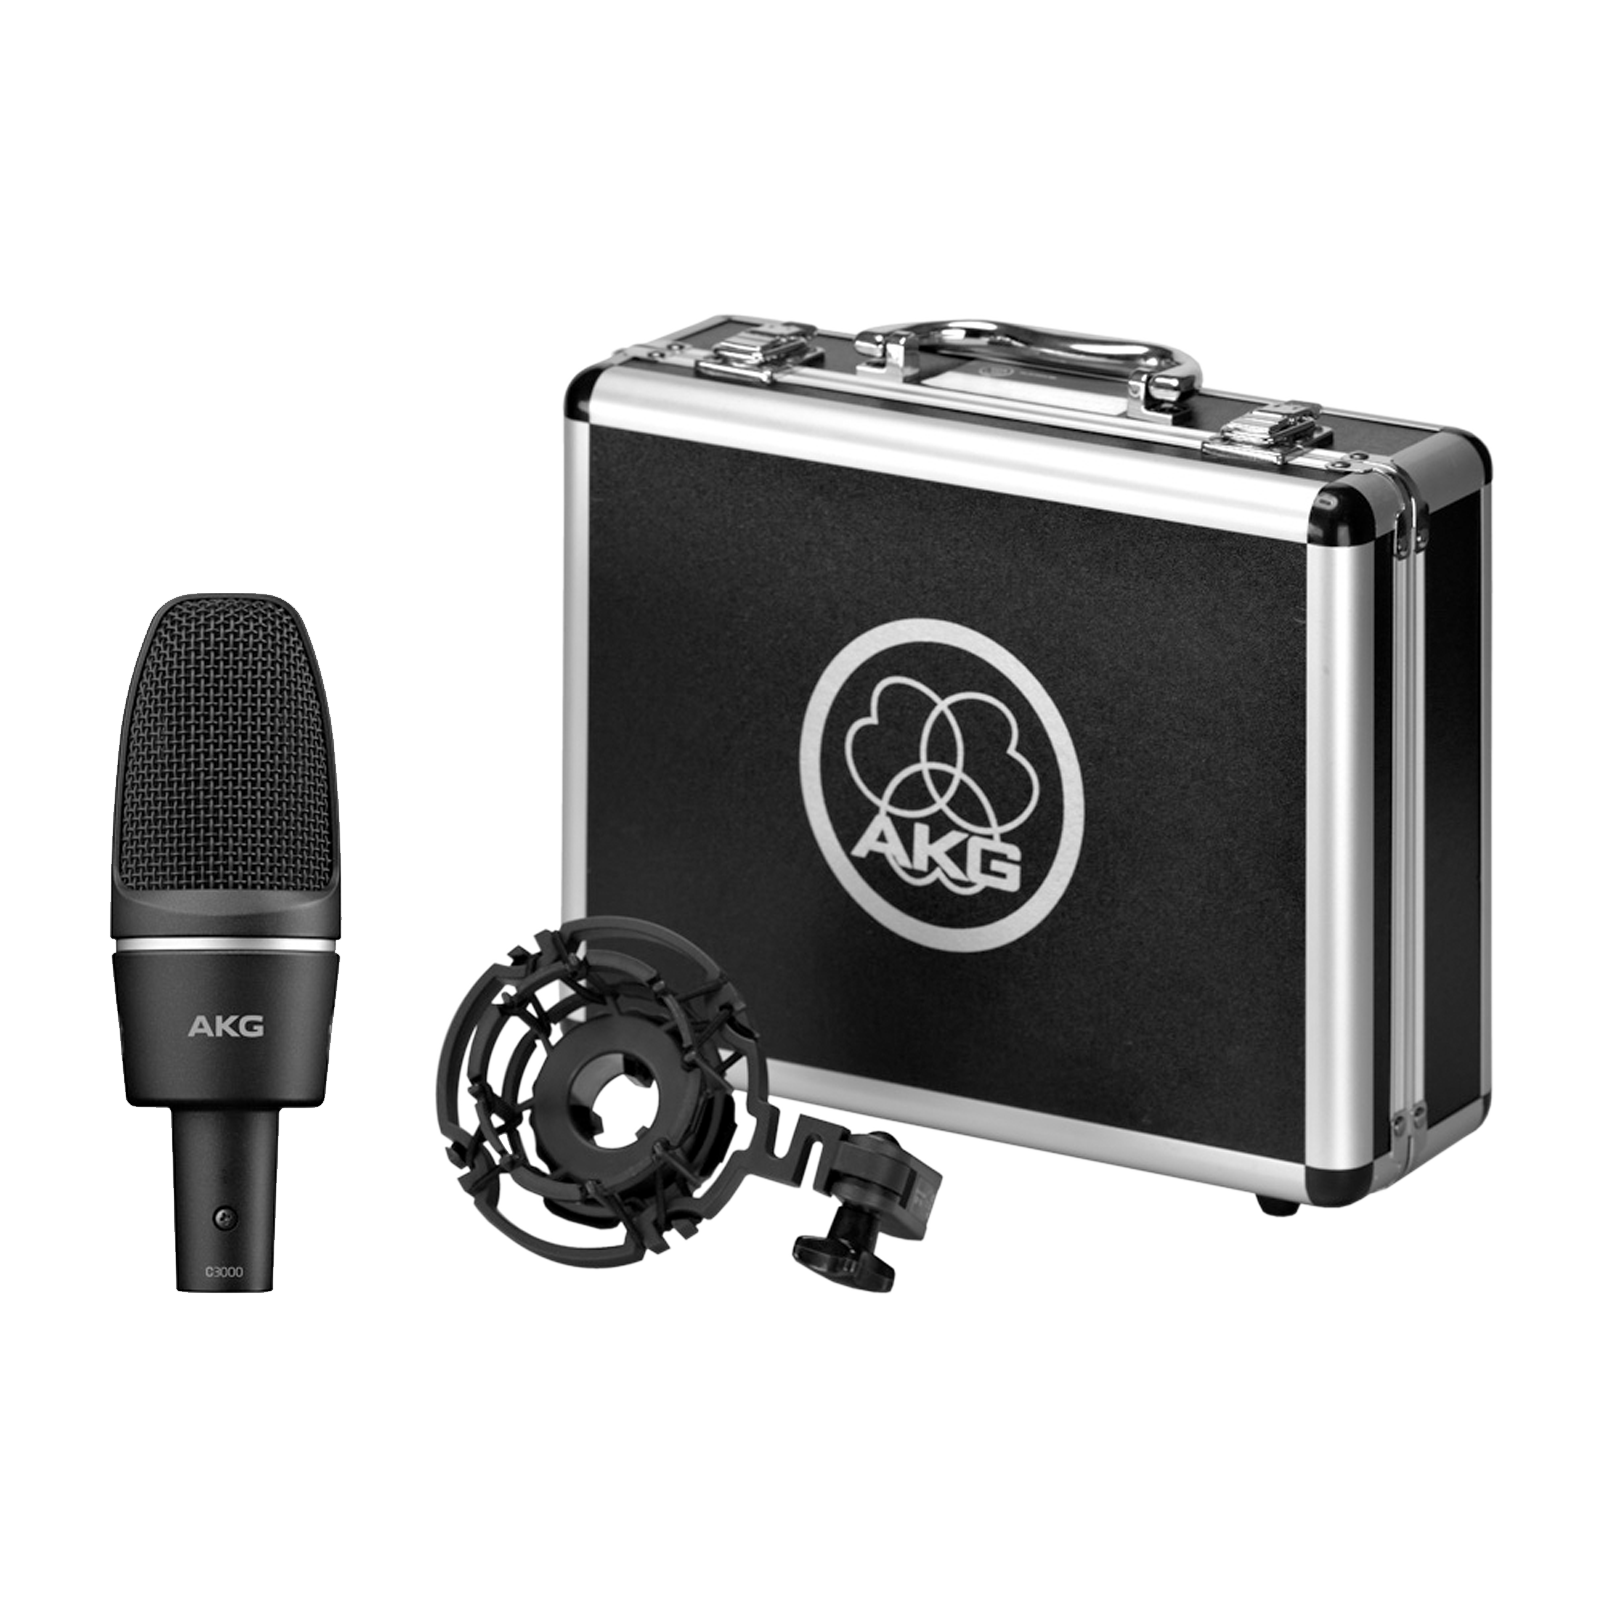 C3000 - Black - High-performance large-diaphragm condenser microphone - Detailshot 2